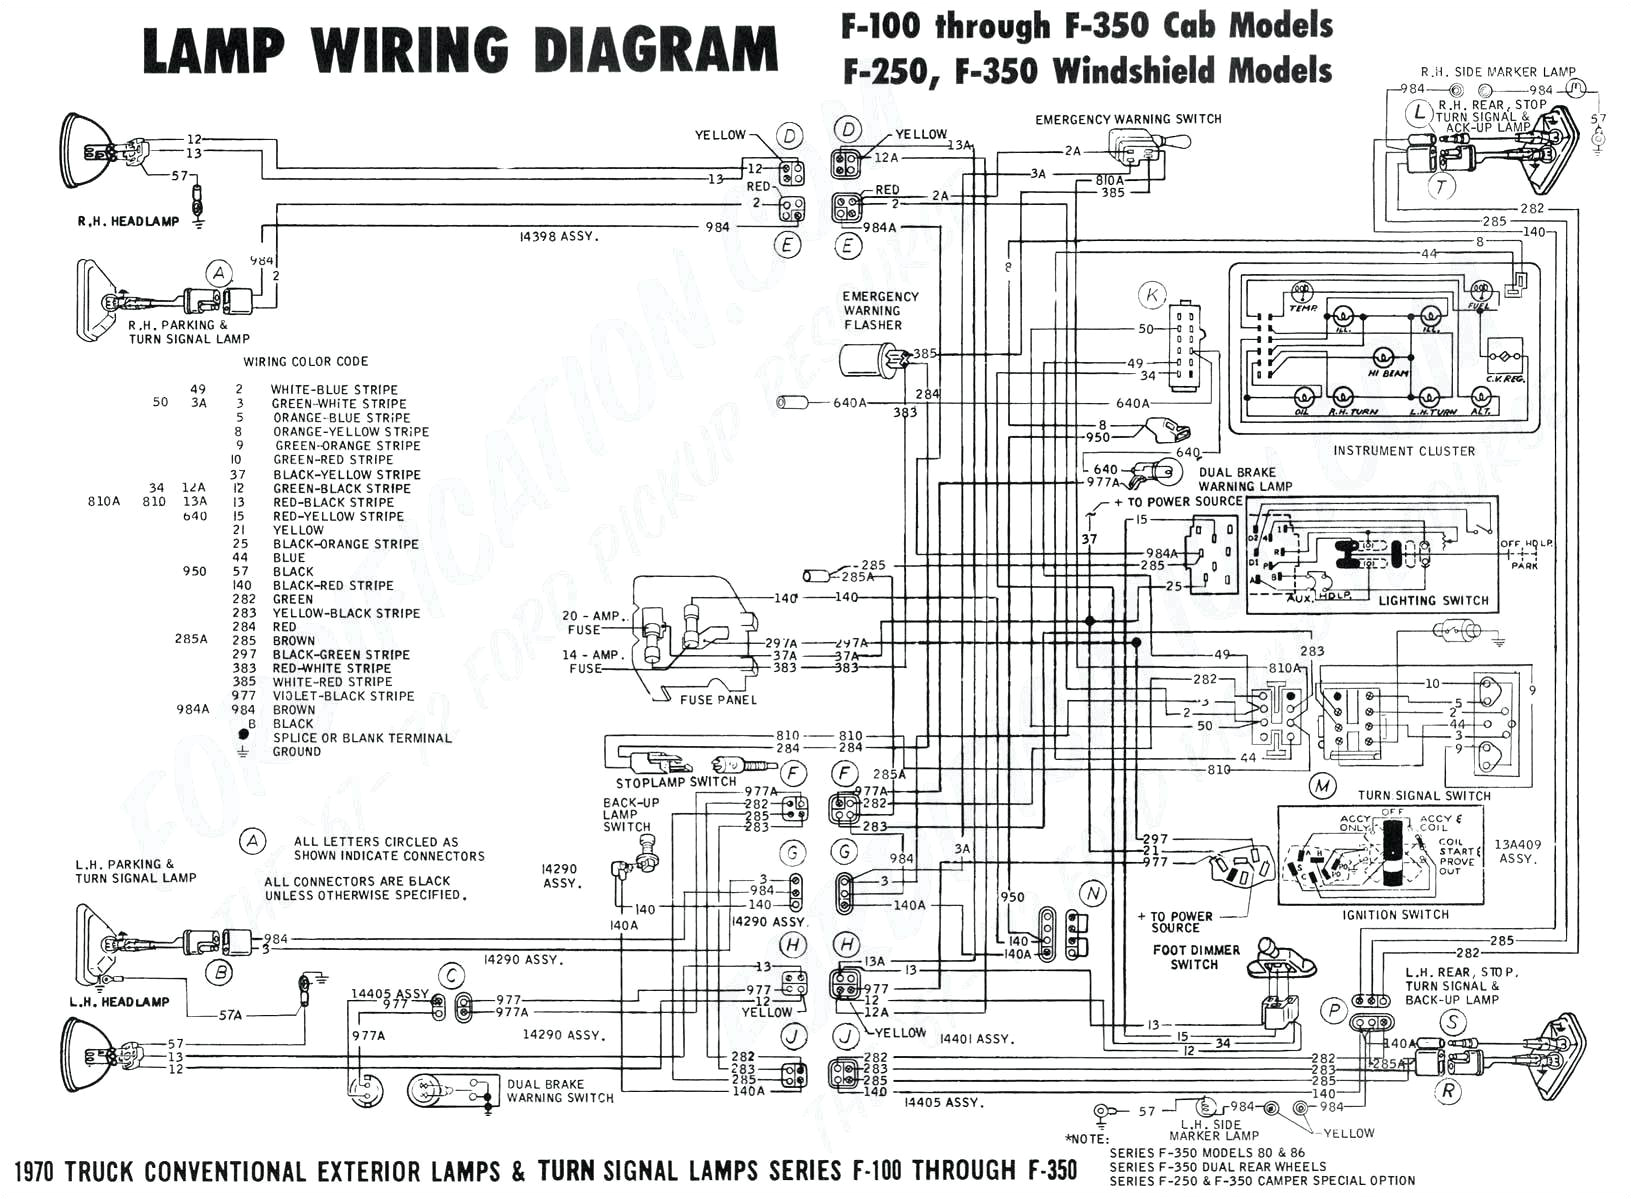 hes 9600 wiring diagram beautiful hes 5000 series electric strike wiring diagram reference hes 9600 12